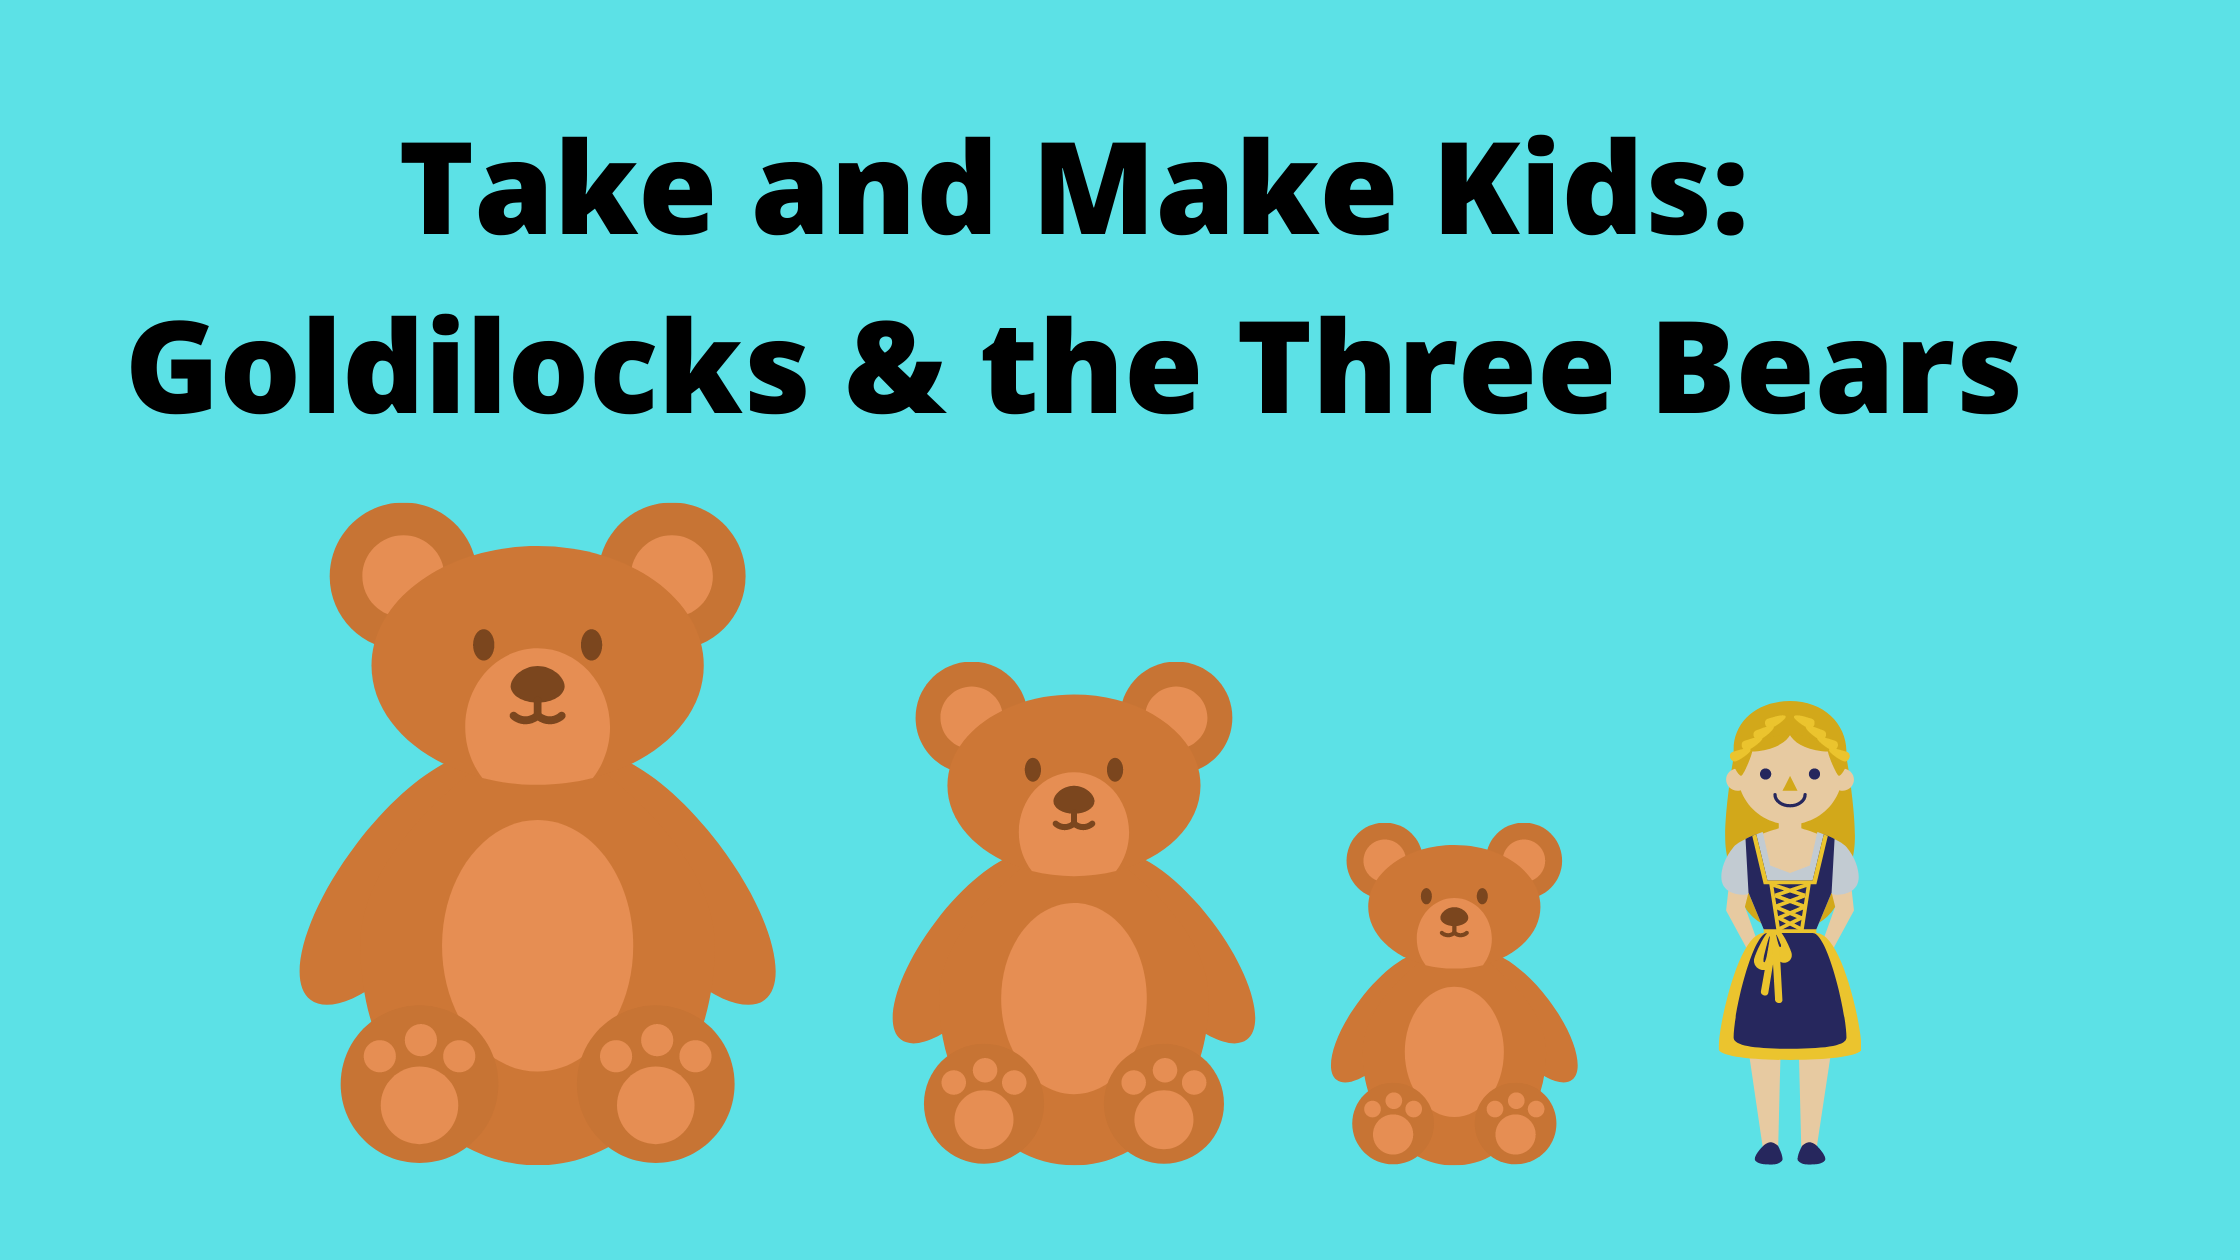 Take and Make Kids: Goldilocks & the Three Bears